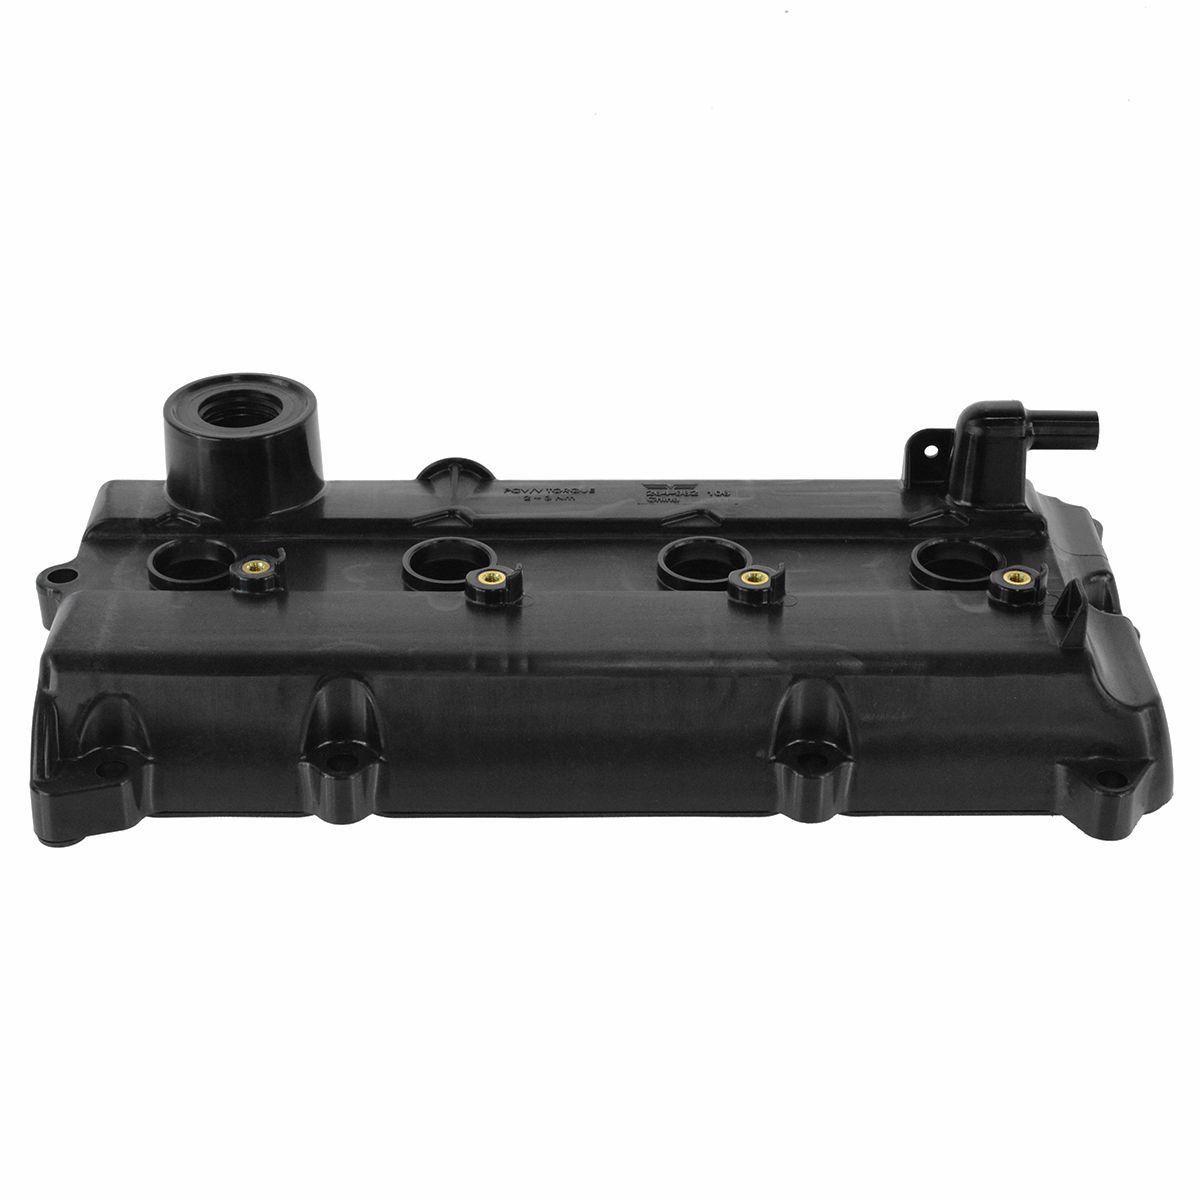 Engine-Valve-Cover-Gaskets-amp-Ignition-Coil-Kit-Set-for-Nissan-Altima-Sentra-New thumbnail 3